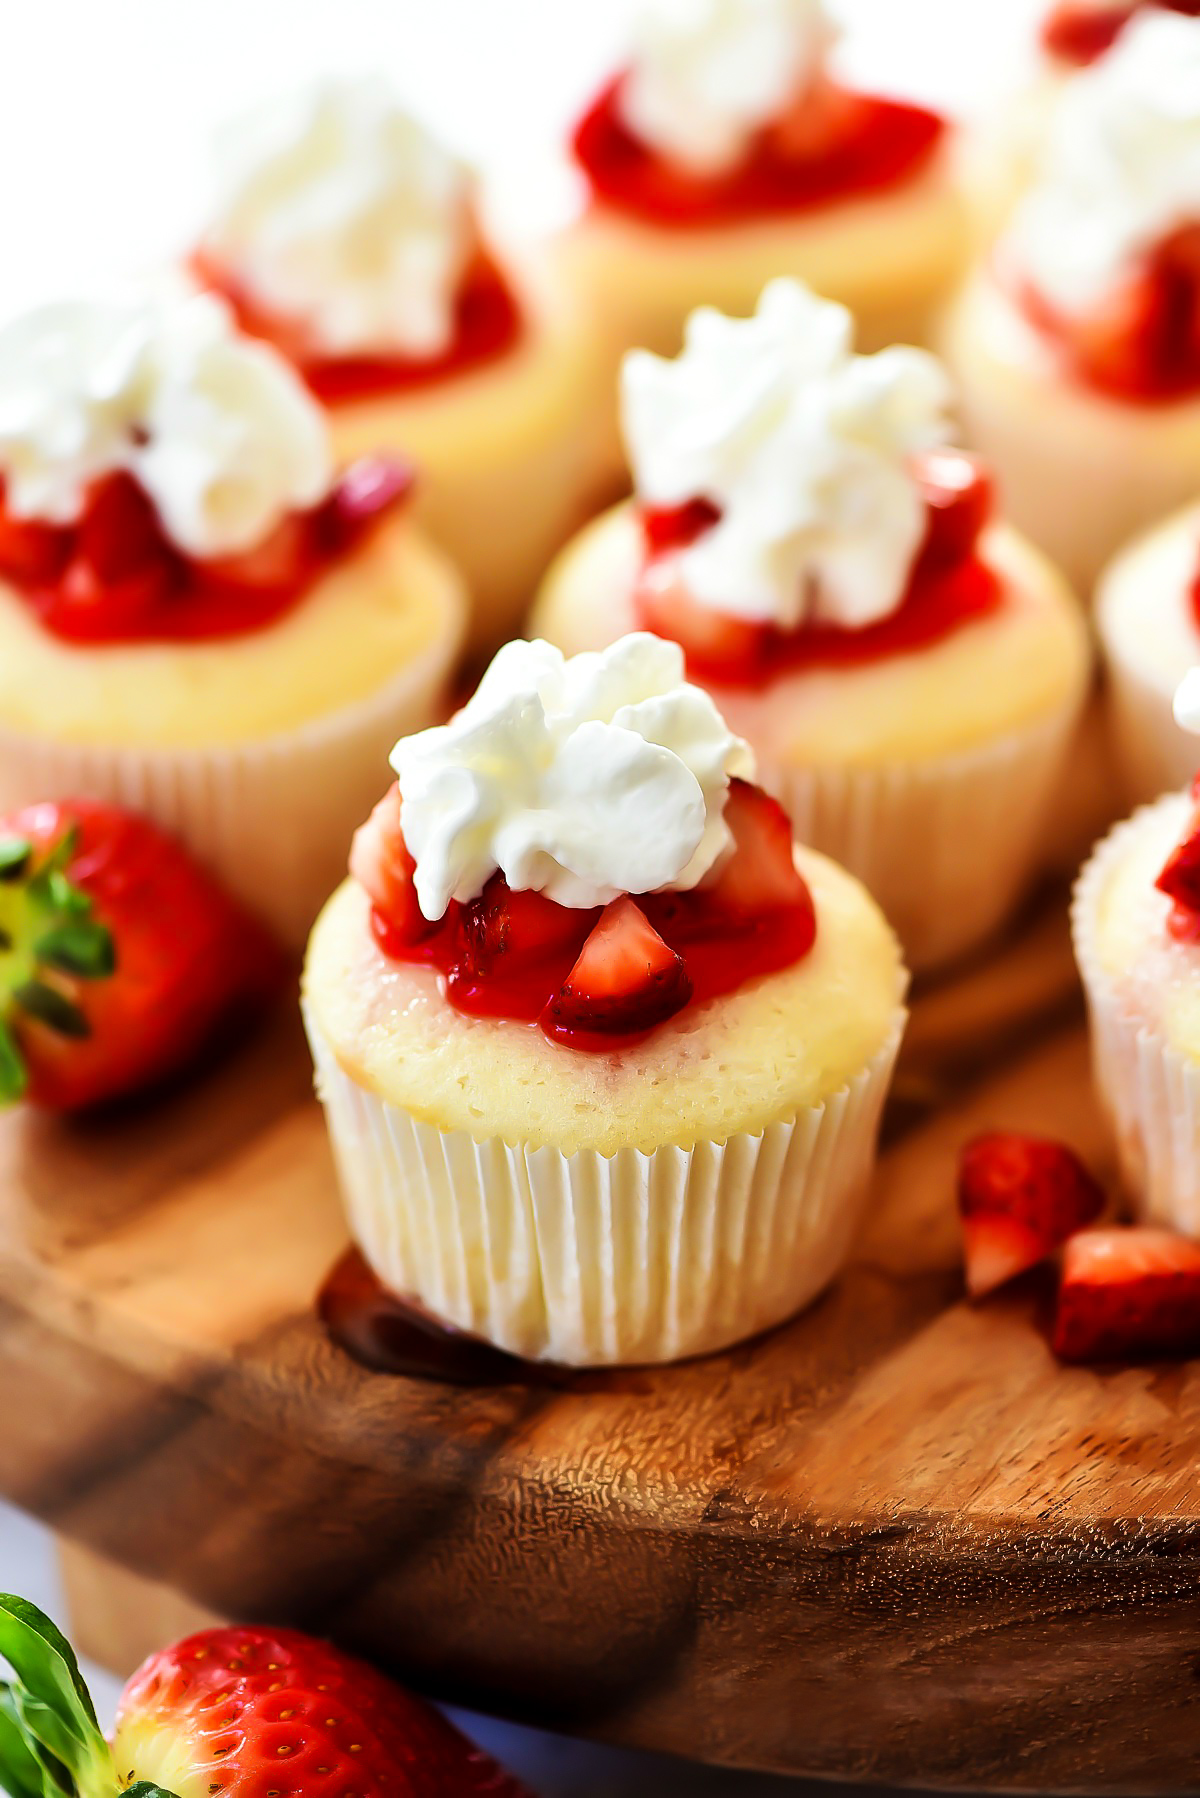 Strawberry Shortcake Cupcakes are white cakes that are light as air and topped with strawberries, glaze and whipped cream. Life-in-the-Lofthouse.com